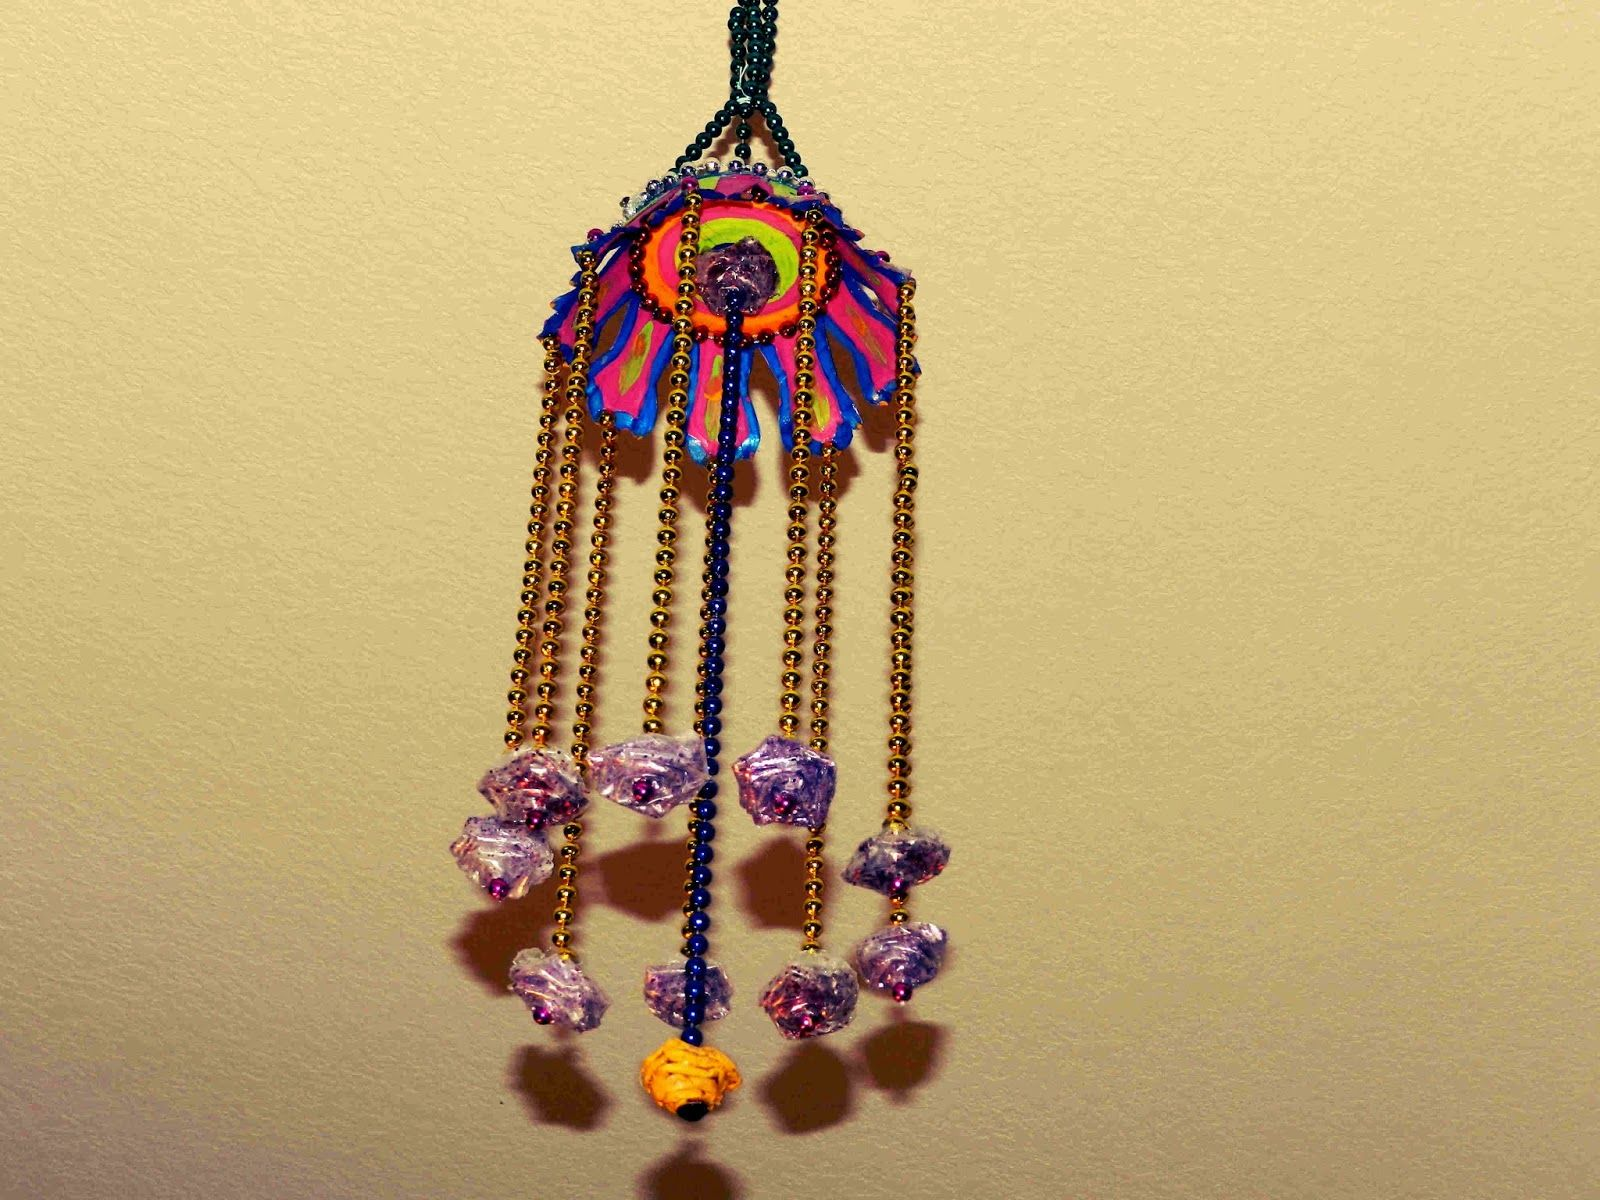 Creative DIY crafts: Hanging wall craft with bead chain, paper cup ...